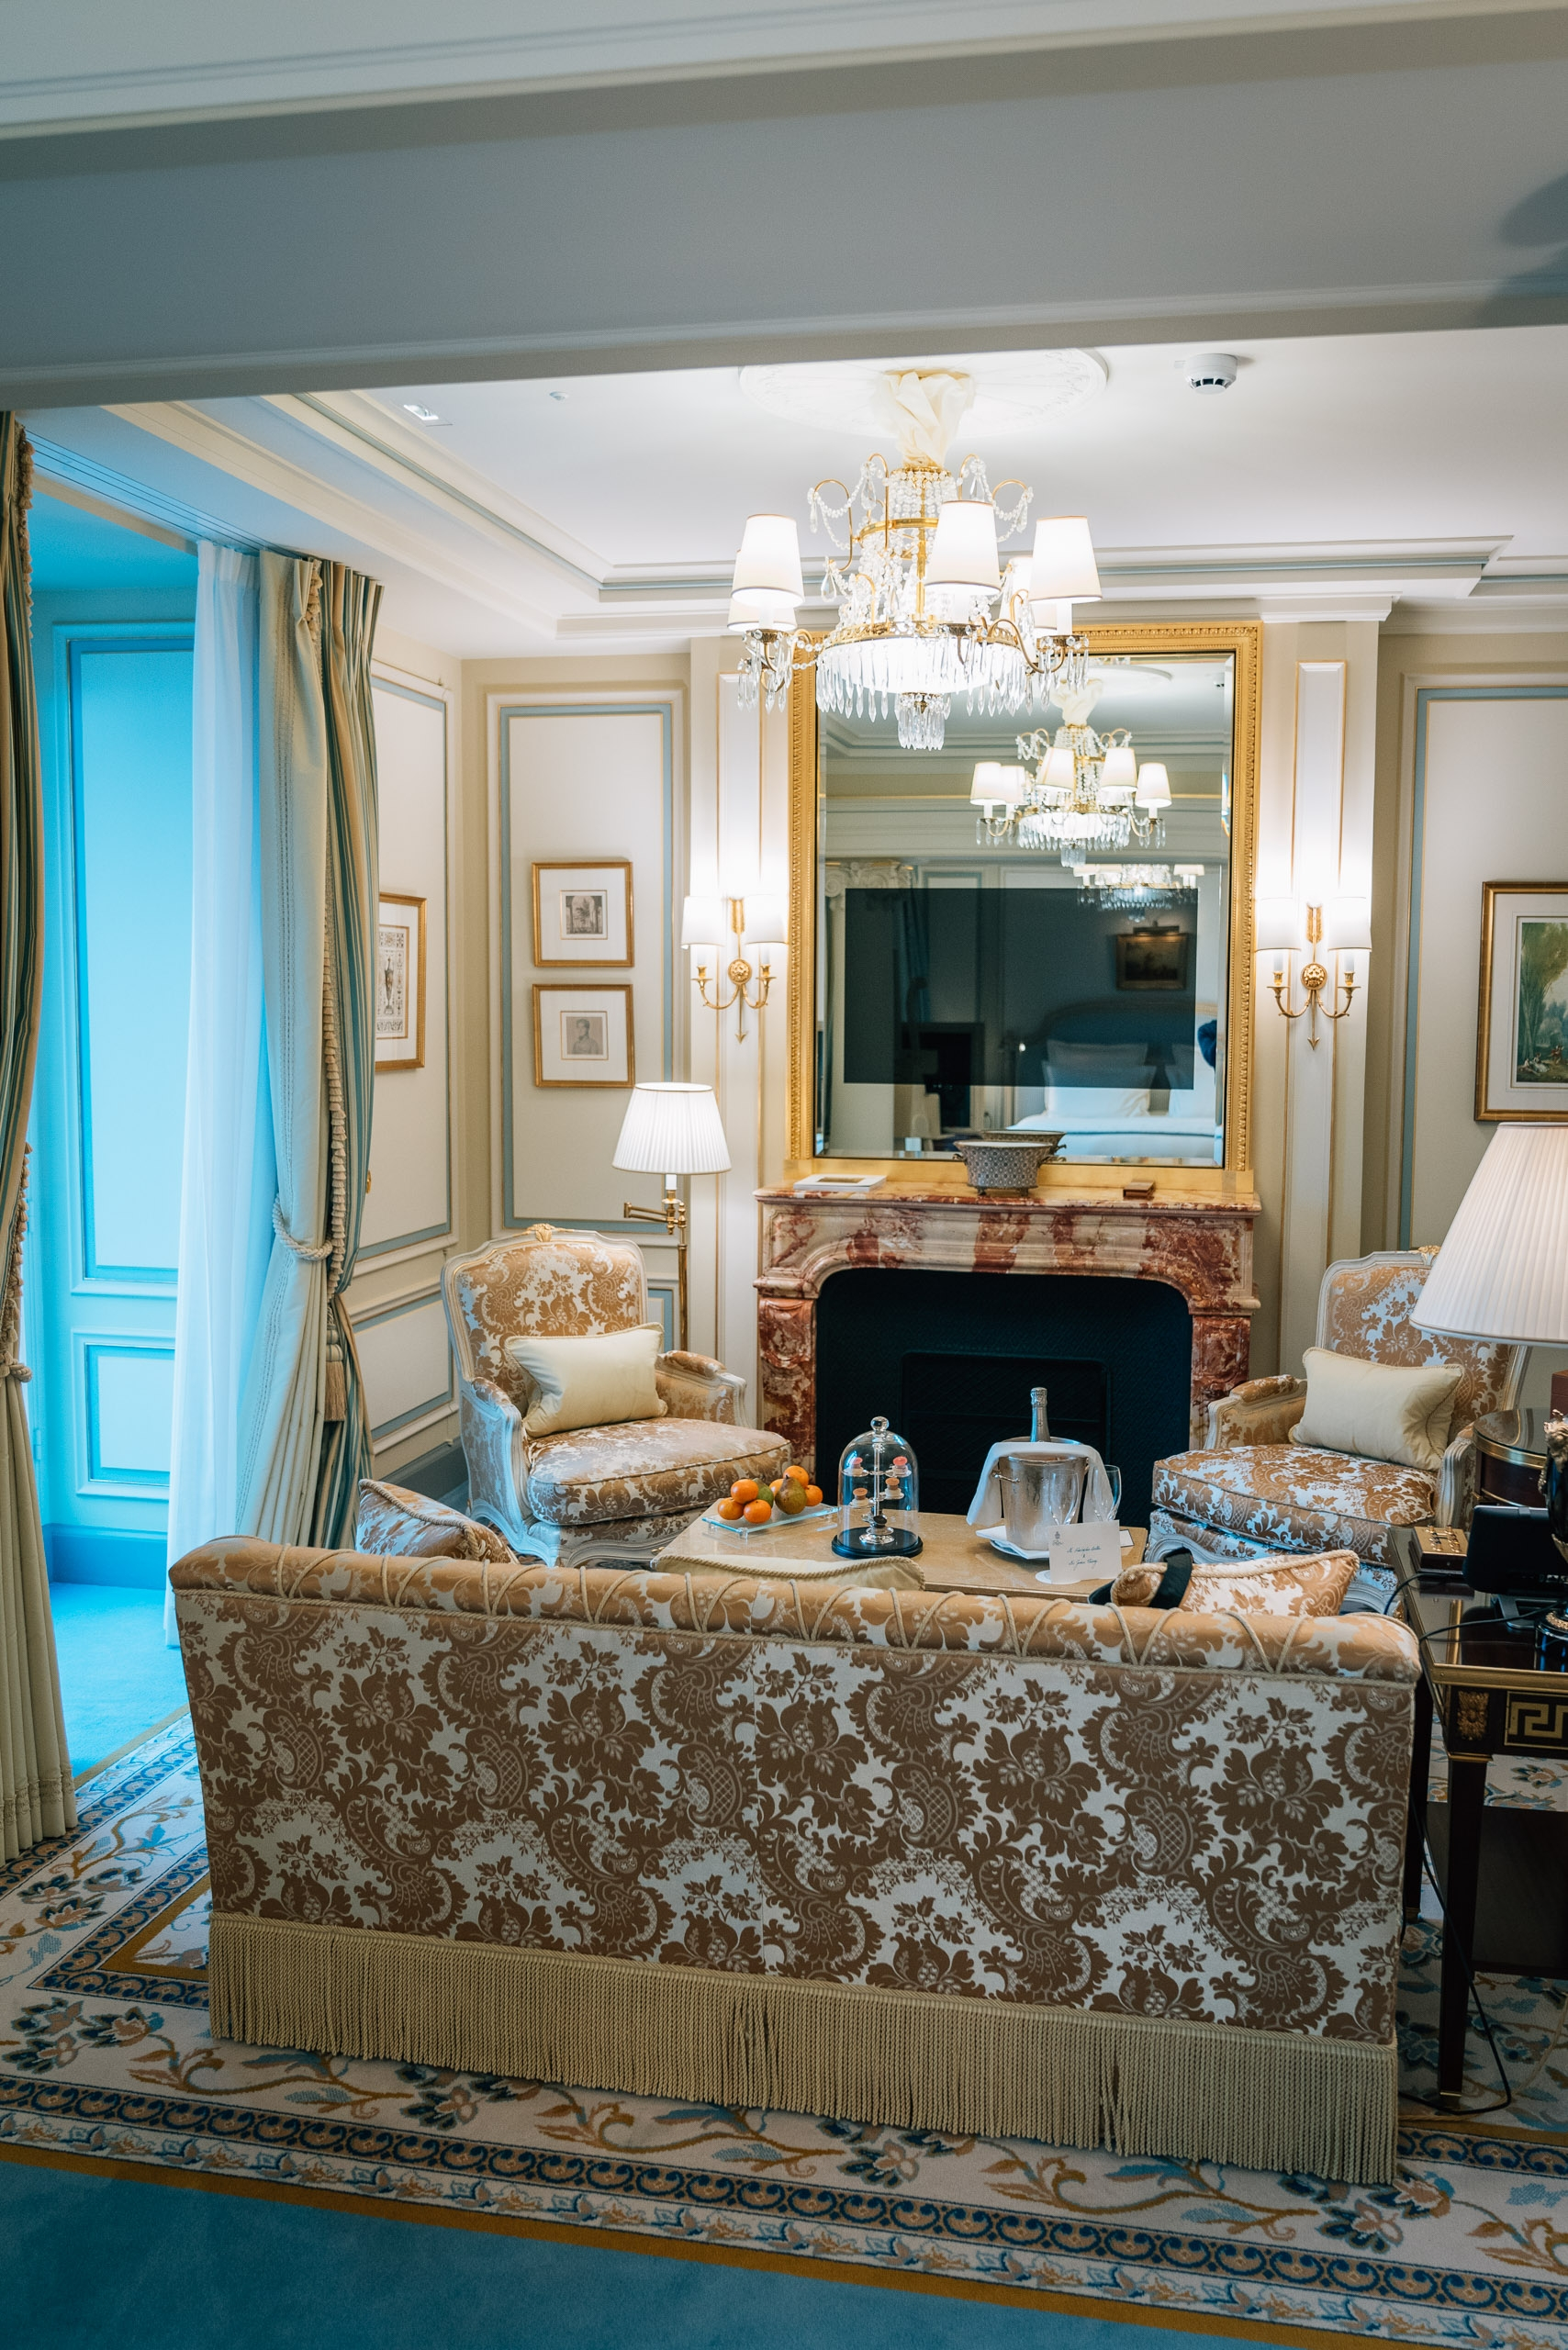 Our Room at the Ritz Paris